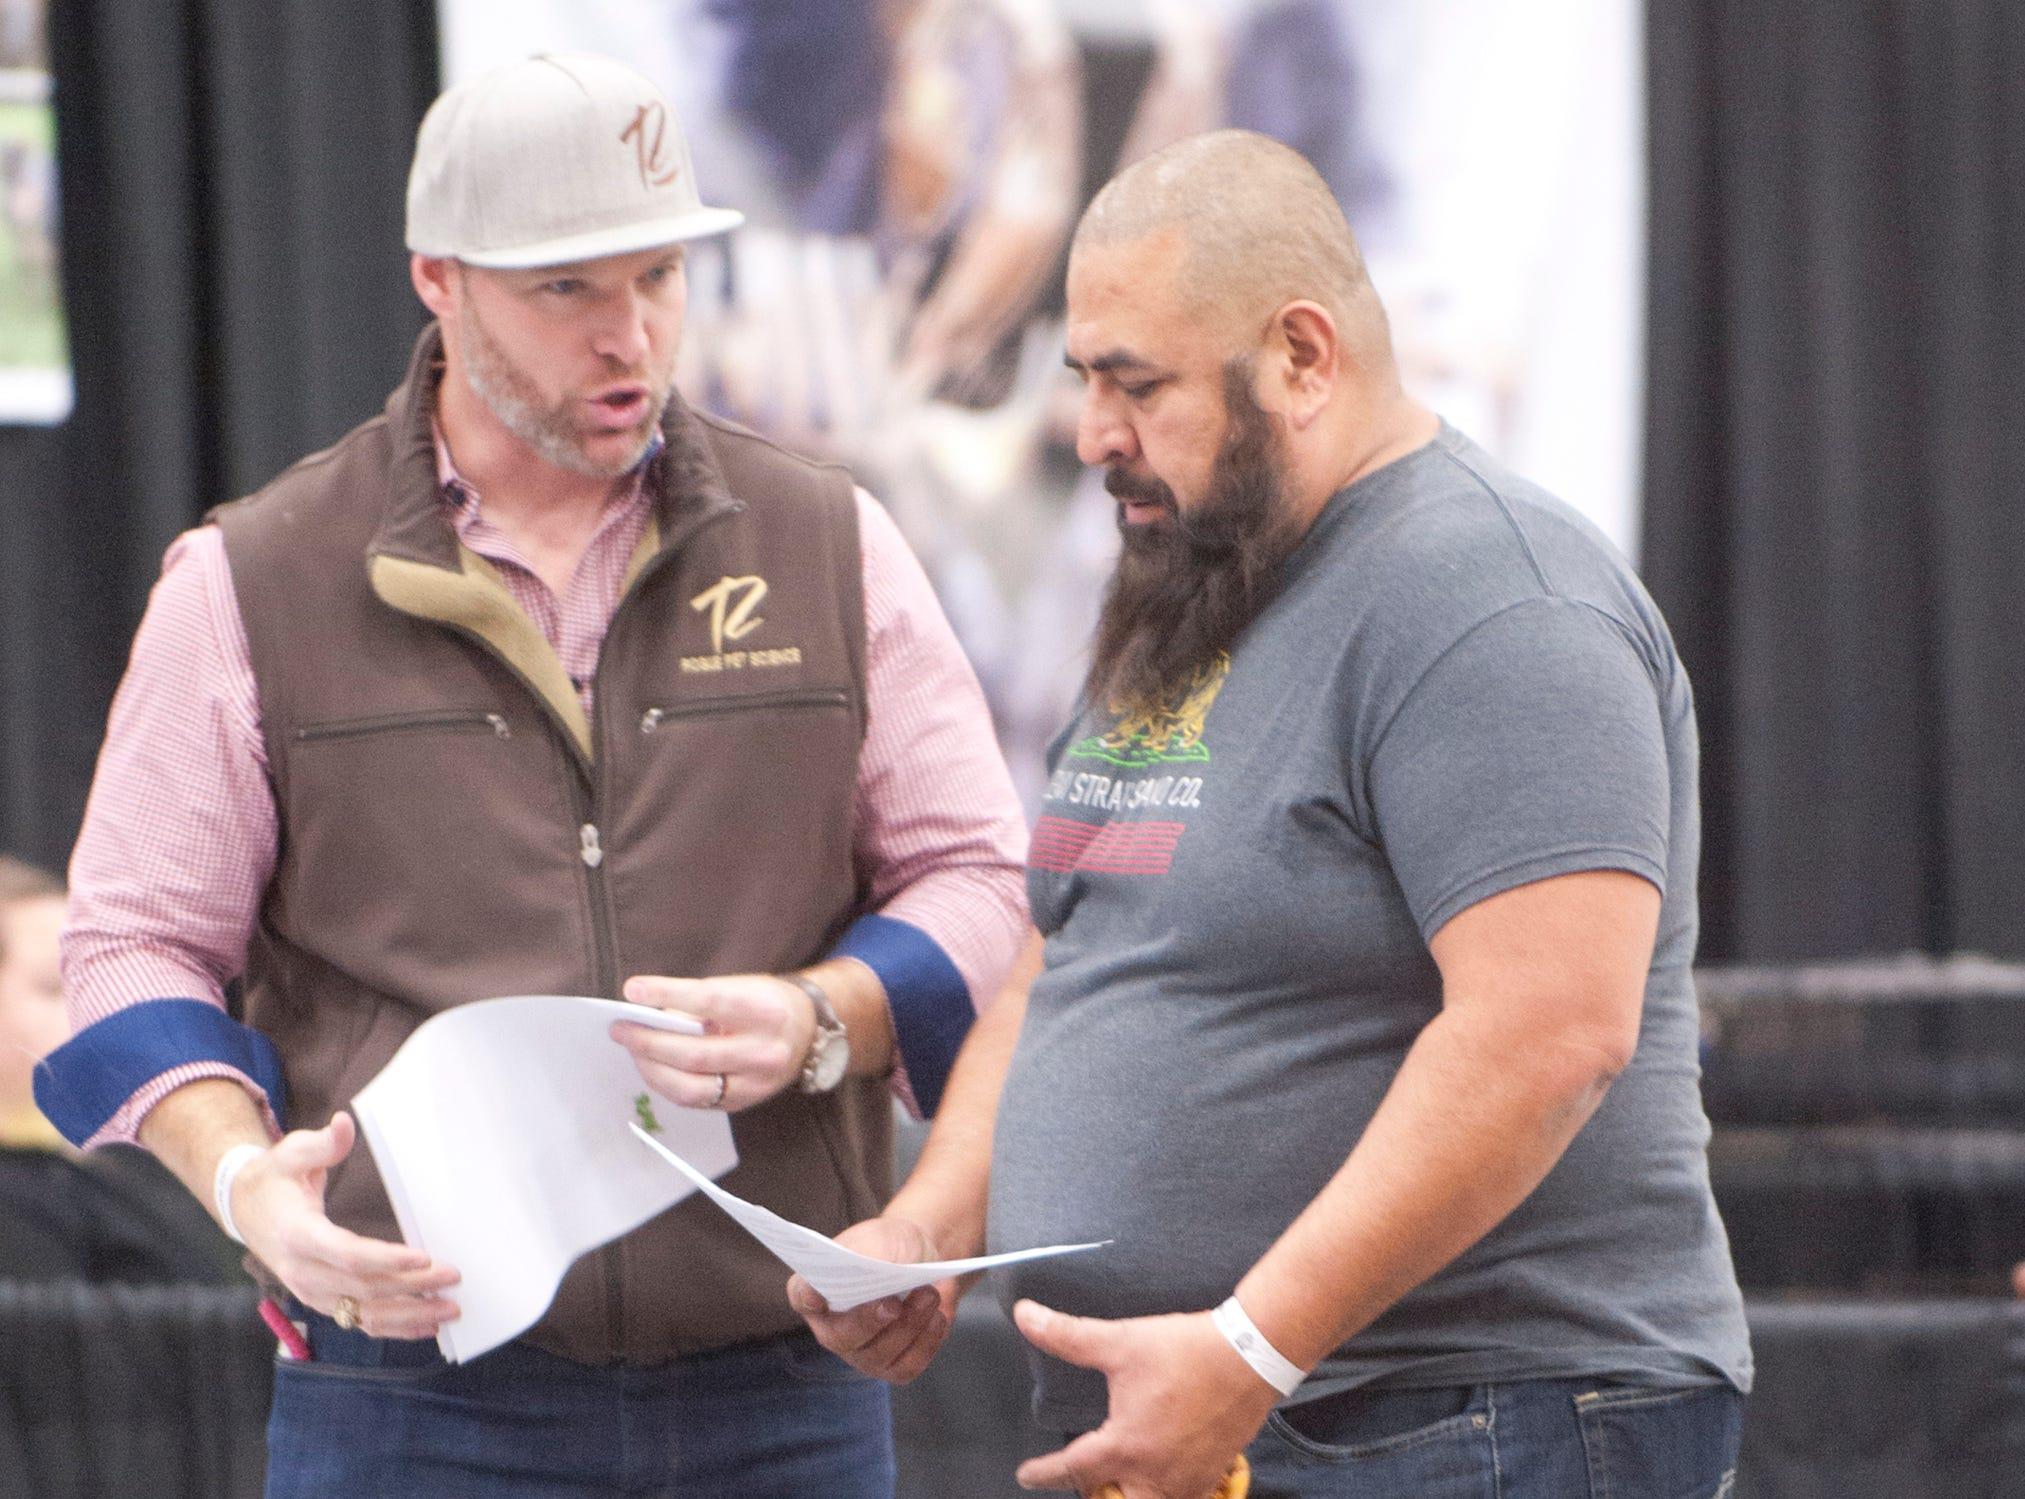 Jesu Torres, of Indianapolis, right, holding onto his dog, Kai, chats with Nathan Dewsbury, left, scientist and founder of Rogue Pet nutrition food, at the 2018 American Bully Kennel Club's 12th annual confirmation event at the Kentucky Convention Center in Louisville. Torres is looking for a new food to help him grow his dog and Dewsbury has a new food developed for carnivores.November 10, 2018